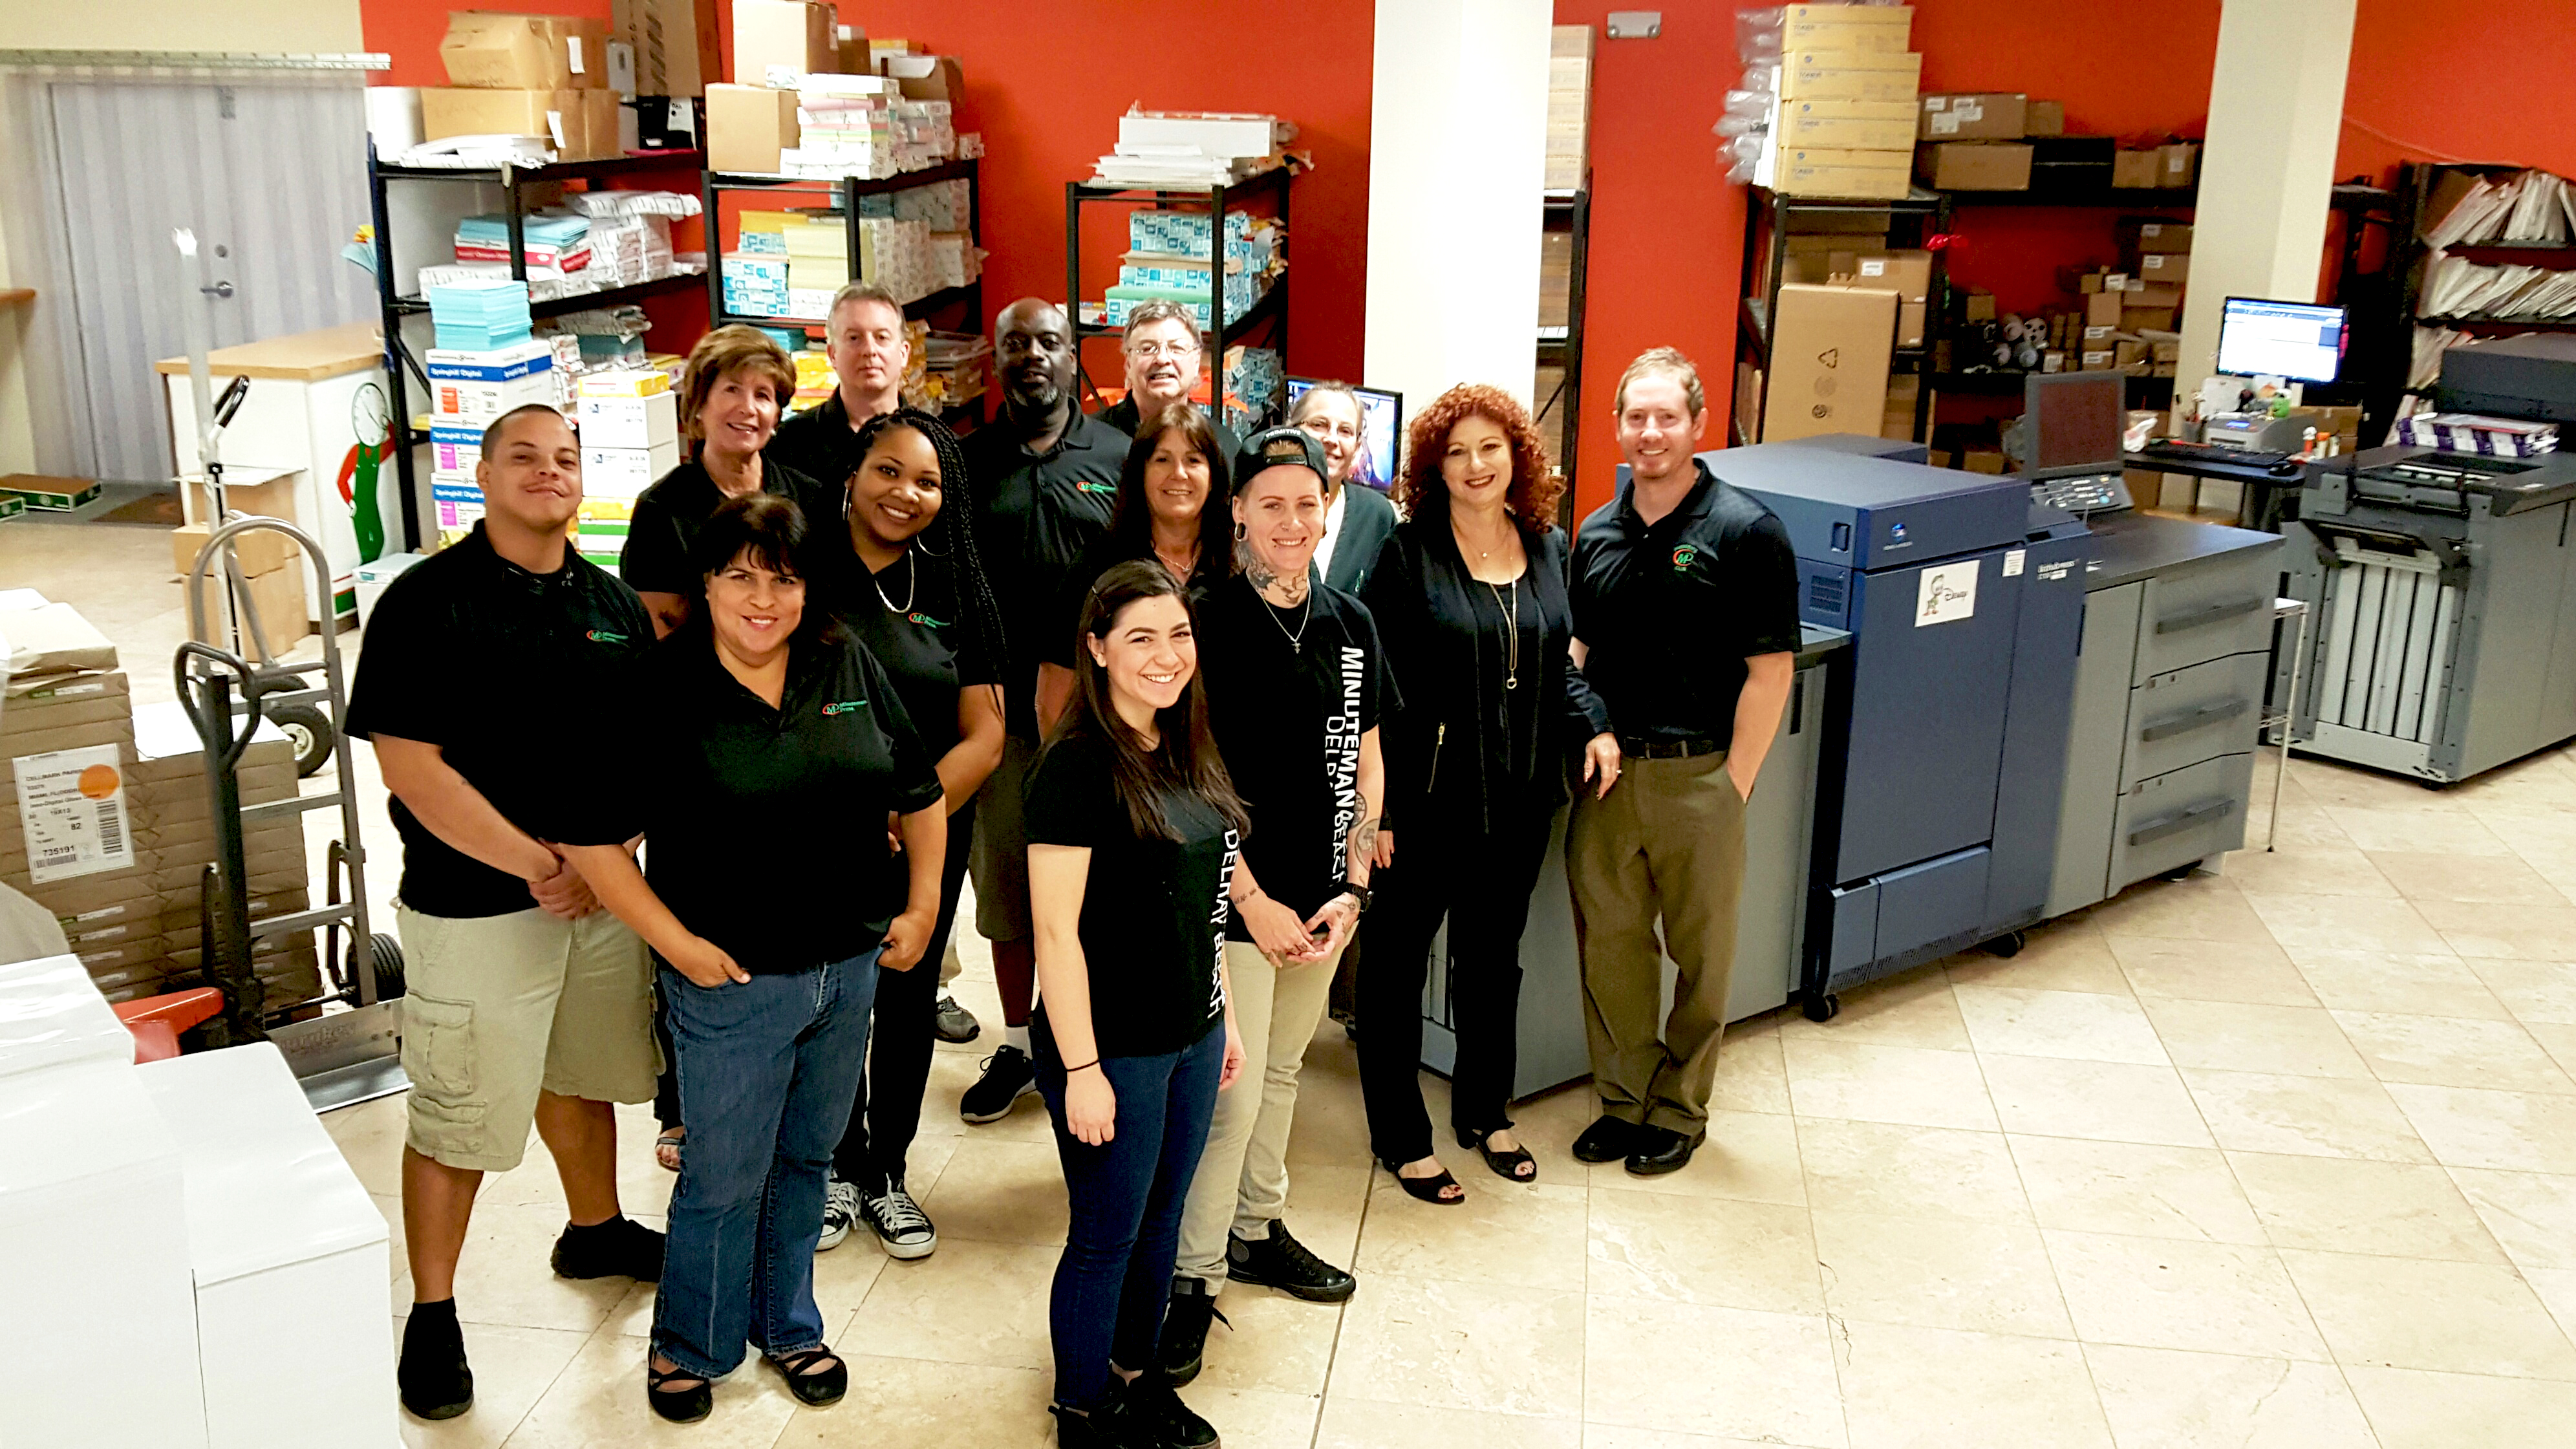 The Minuteman Press franchise staff in Delray Beach love their two Konica Minolta bizhub PRESS® 1100s. Pictured from left to right are: Josh, Idie, Julie, Shennel, Angelo, Melissa, Reggie, Carmen, James, Ricky, Linda, Gail, and owner Matthew Perry. http://www.minutemanpressfranchise.com